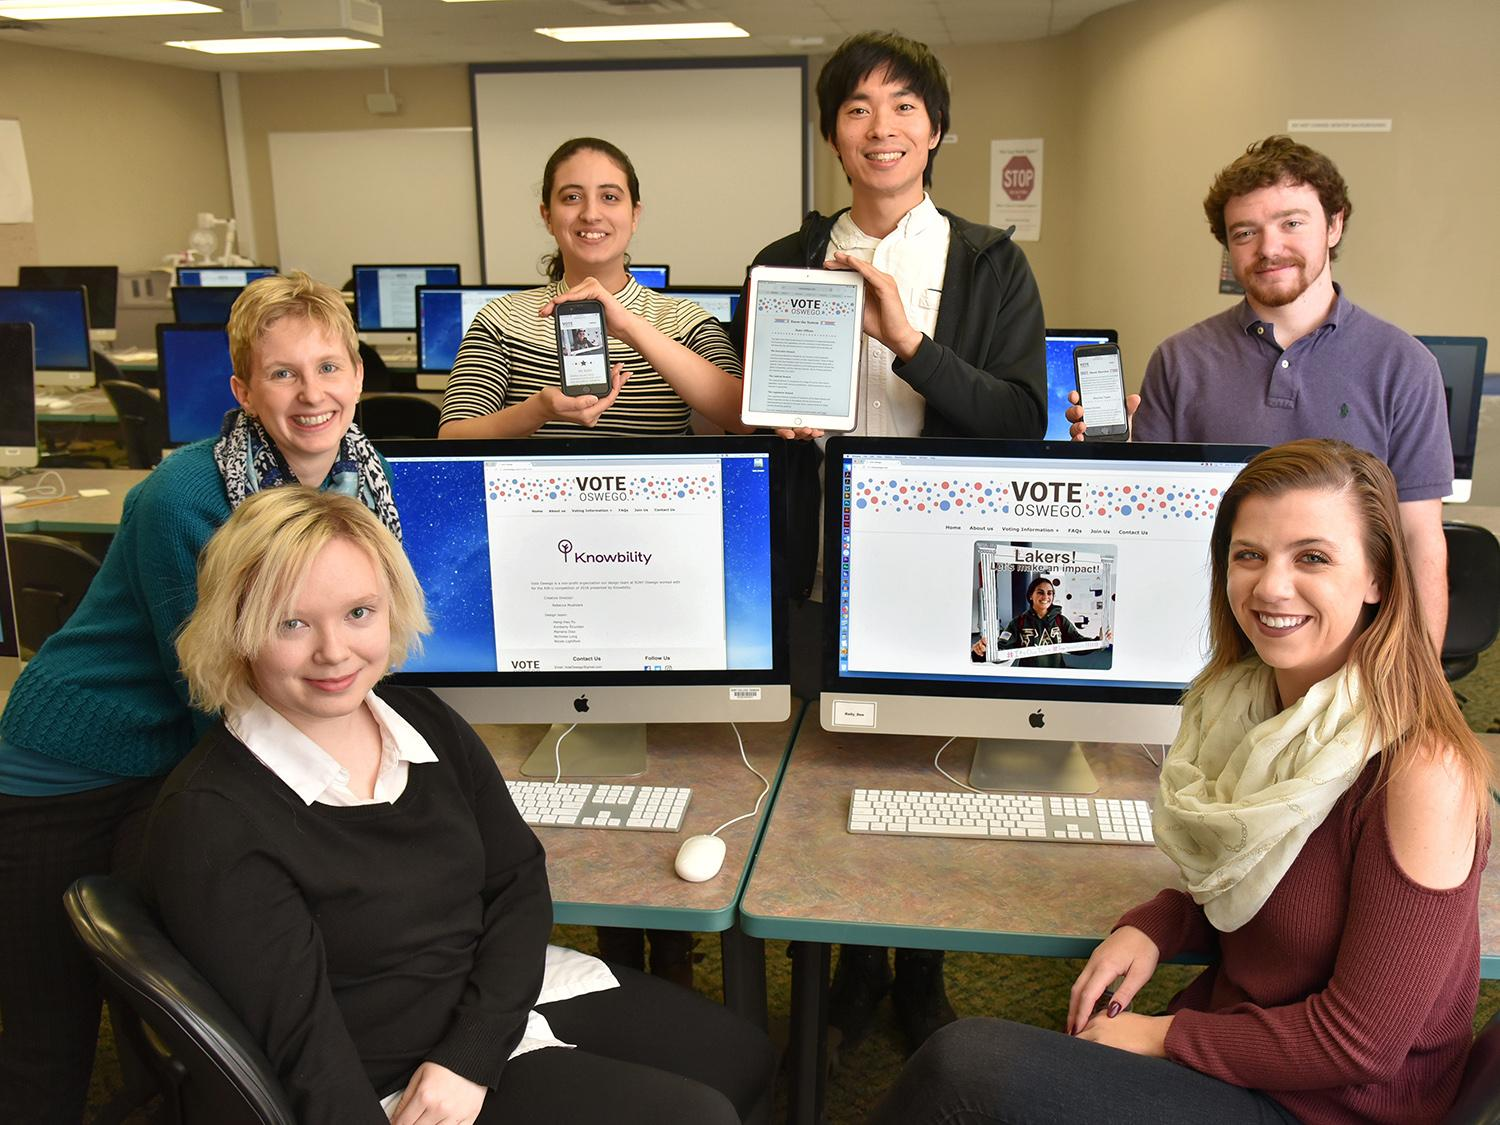 Students and faculty show off the Vote Oswego site they designed which won a national accessibility award